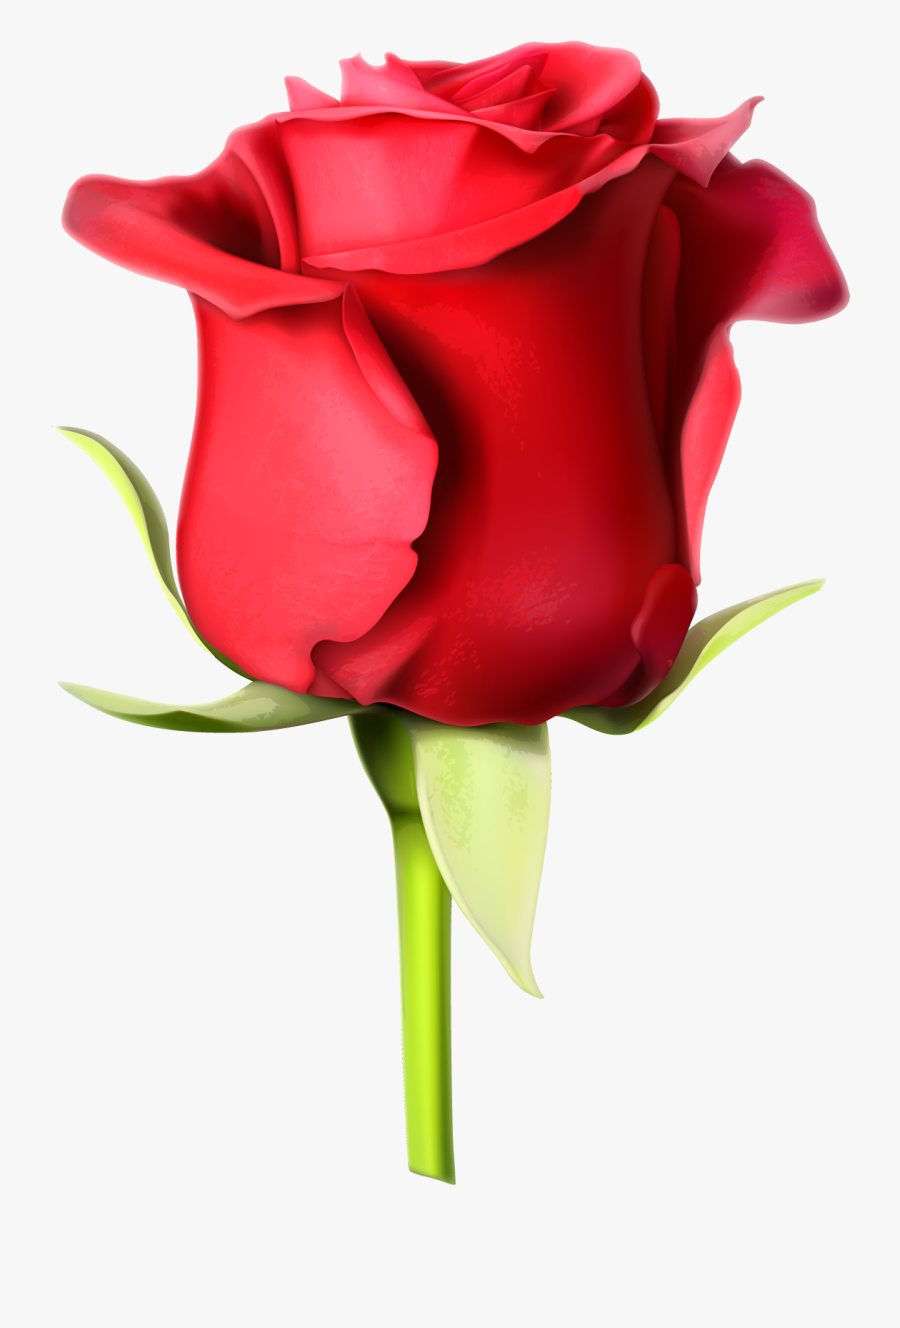 Rose Images Hd Download Clipart , Png Download.